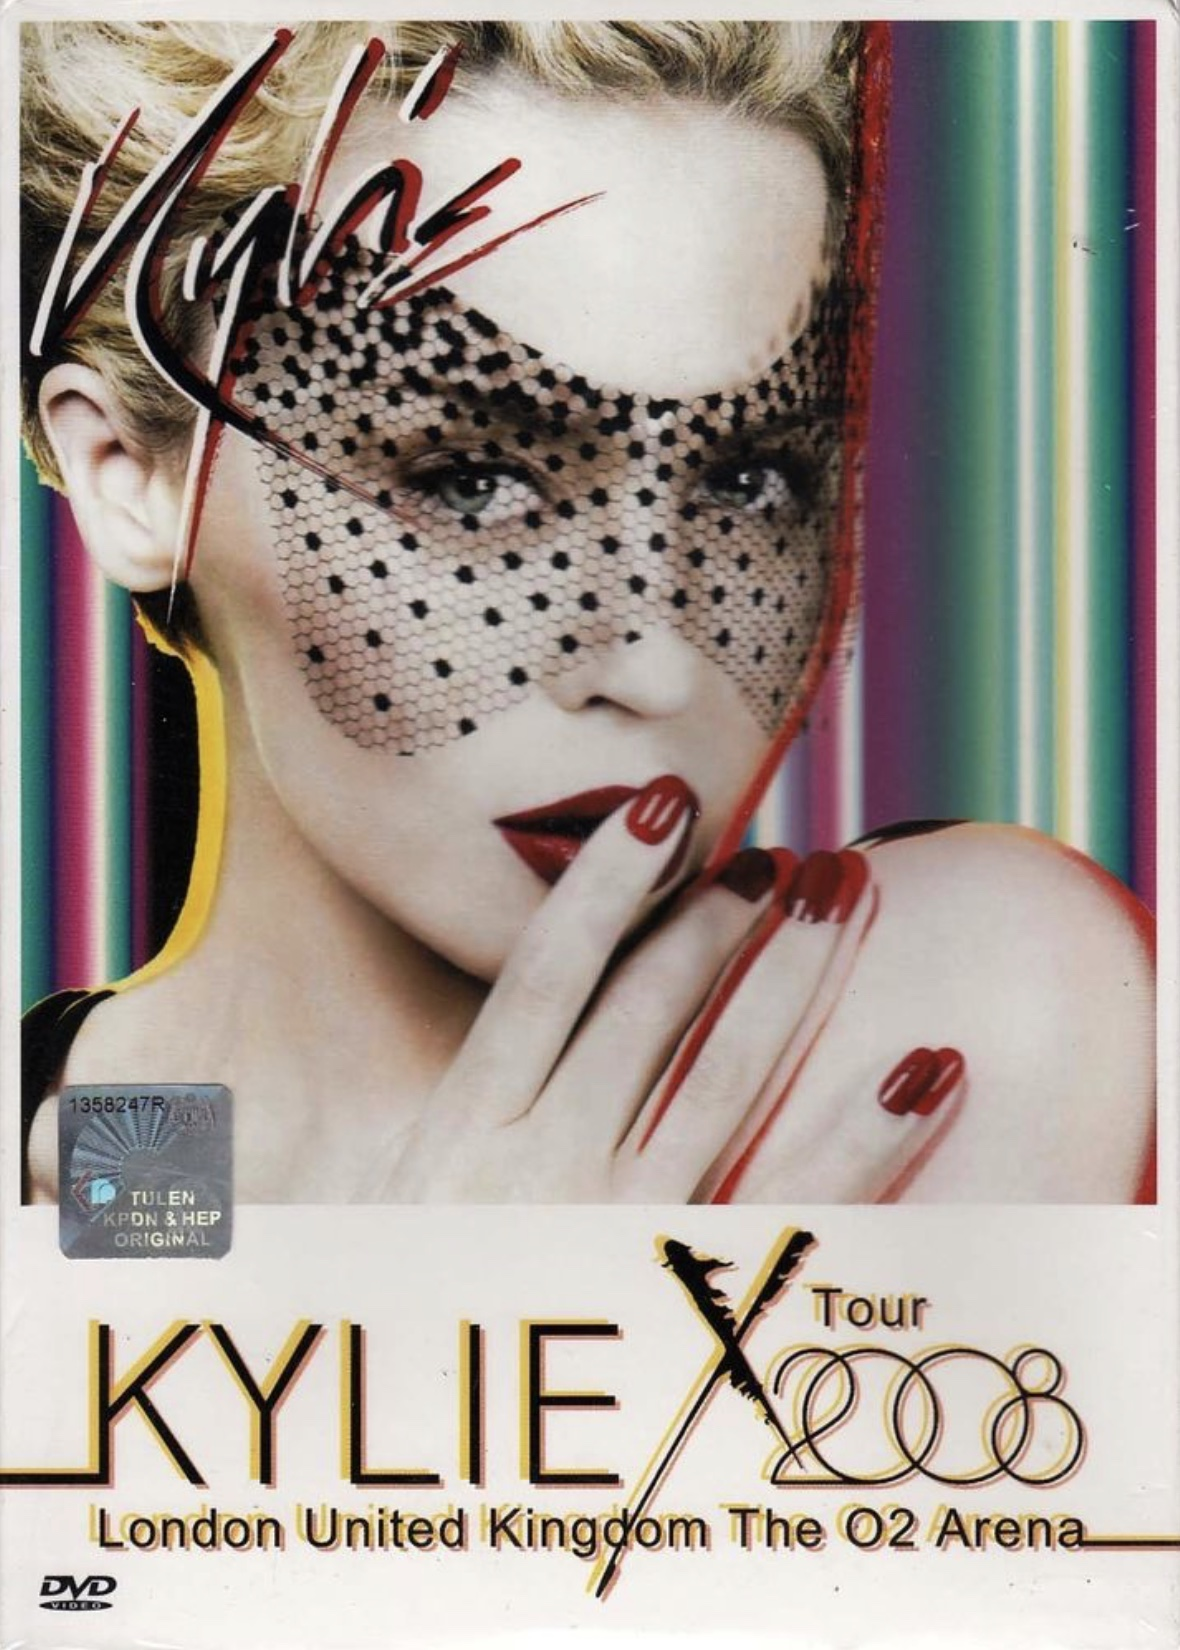 KylieX2008: Live at the O2 Arena (Video 2008) - IMDb